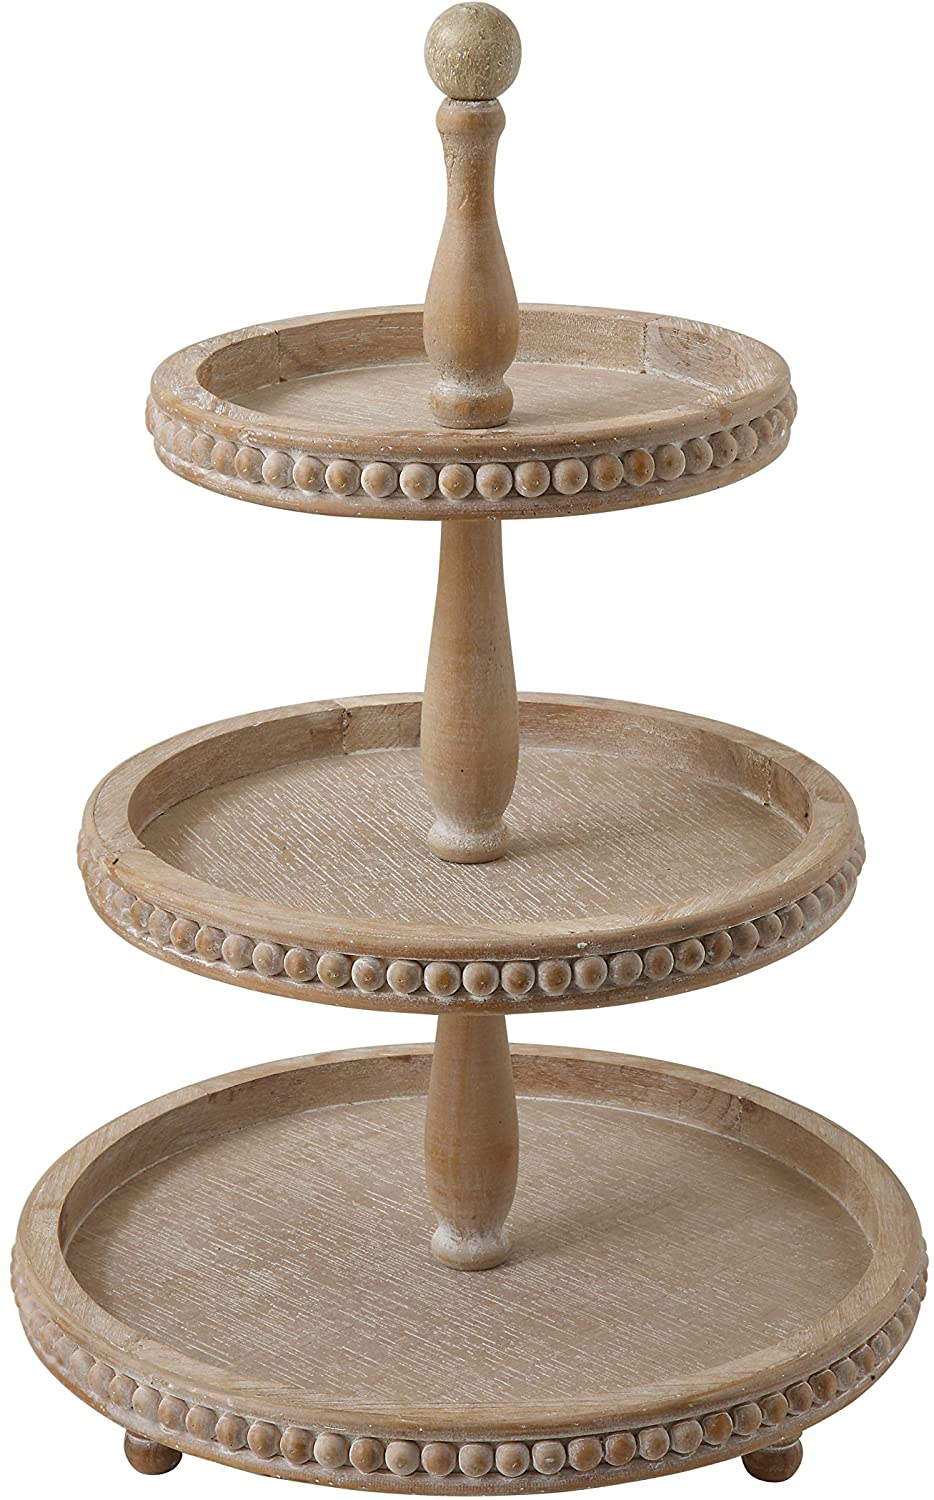 Creative Co Op Round 3 Tier Decorative Wood Tray Home Kitchen